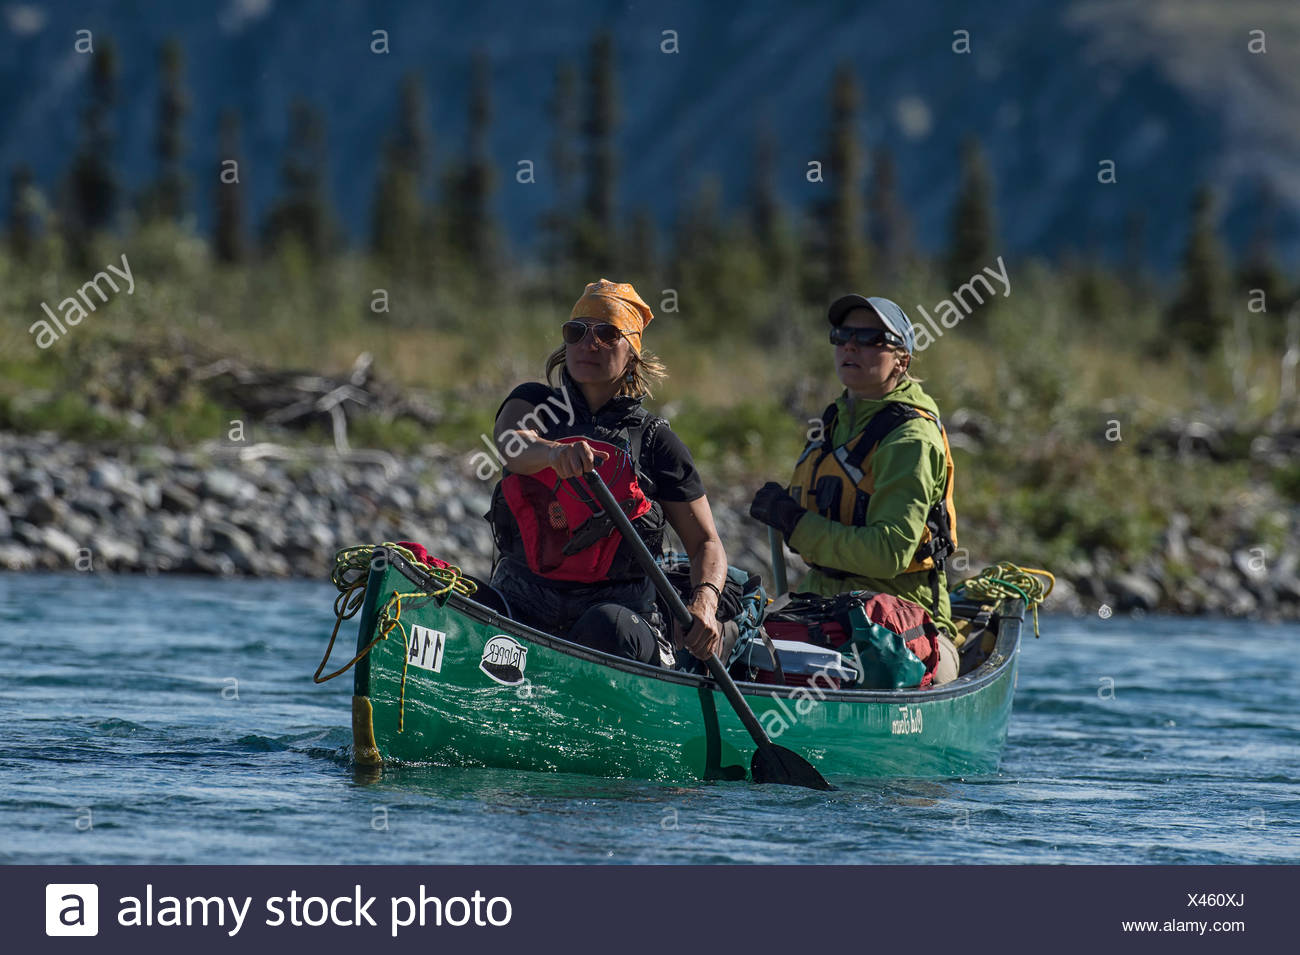 Two women canoe the crystal clear waters of the Wind River. The River, a tributary of the Greater Peel Watershed, has some of the cleanest and clearest water on our planet. - Stock Image